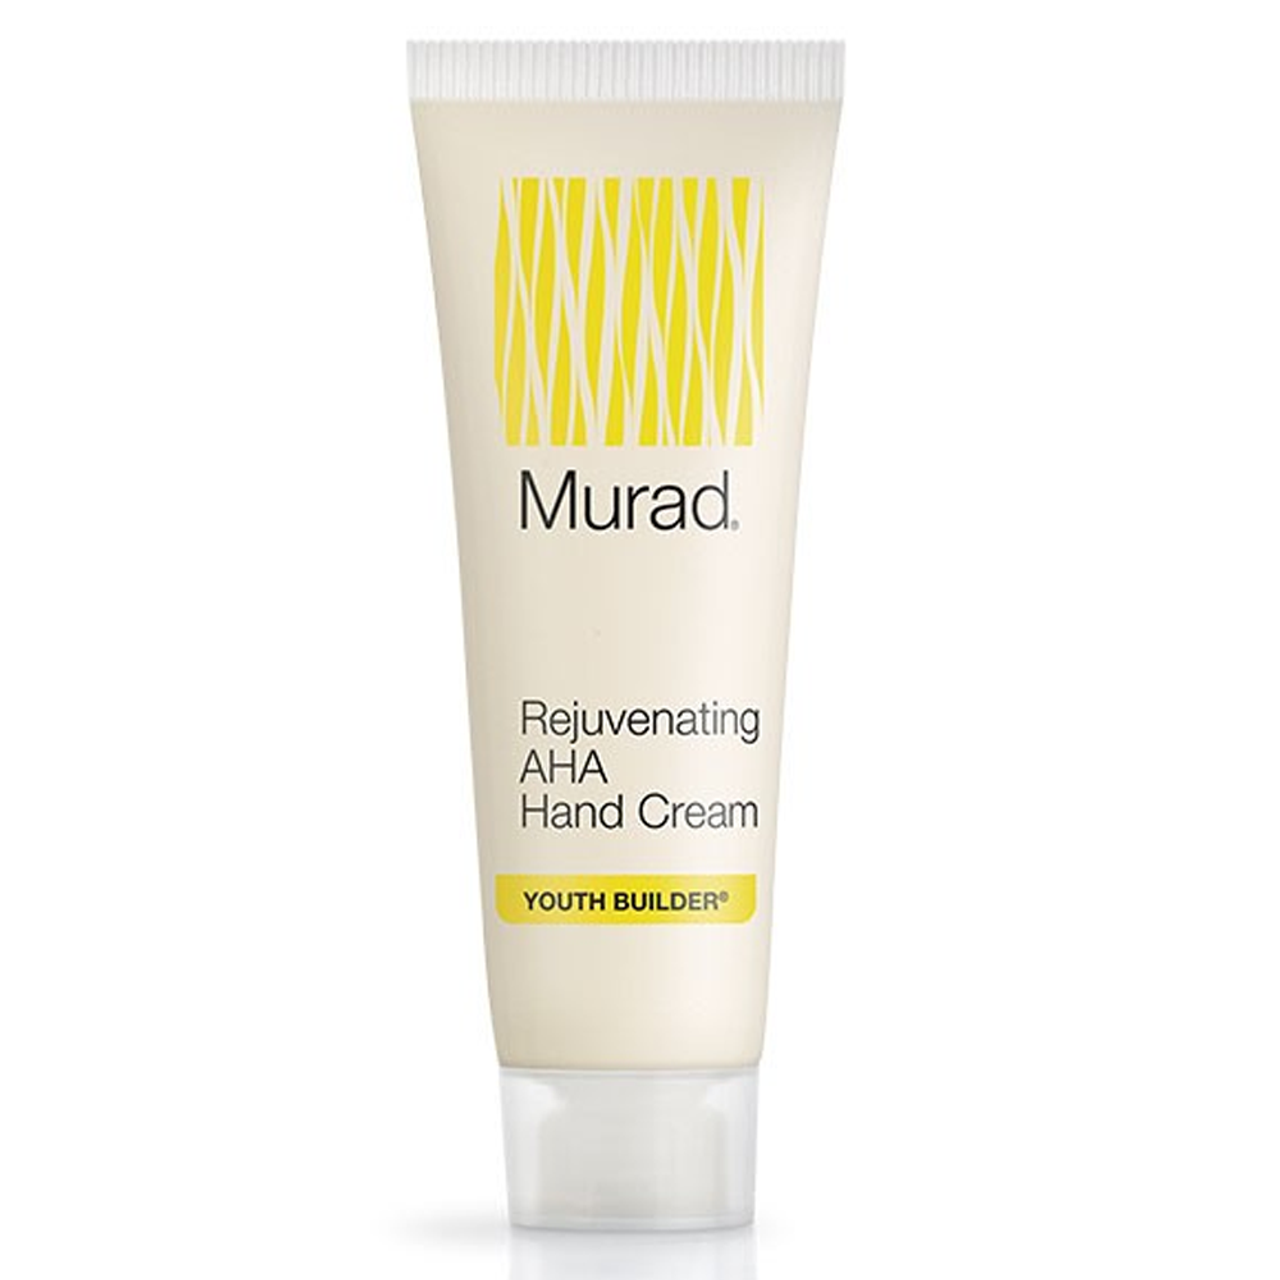 Murad Rejuvenating AHA Hand Cream  2.65 oz